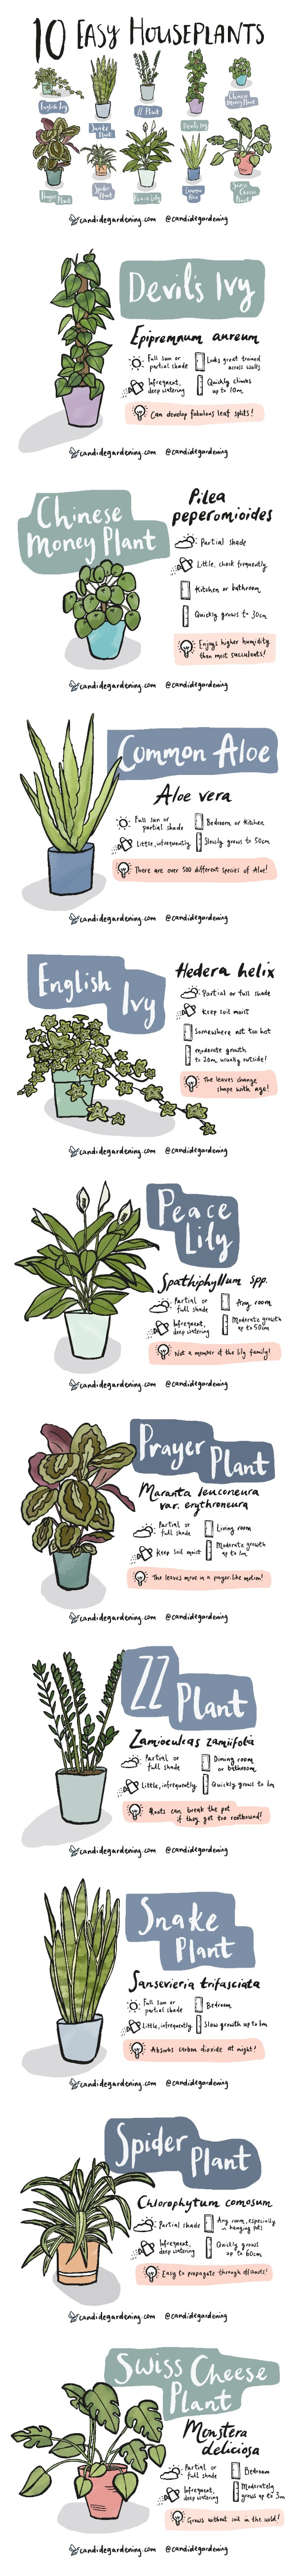 10 Houseplants That Are Actually Easy To Keep Alive #infographic